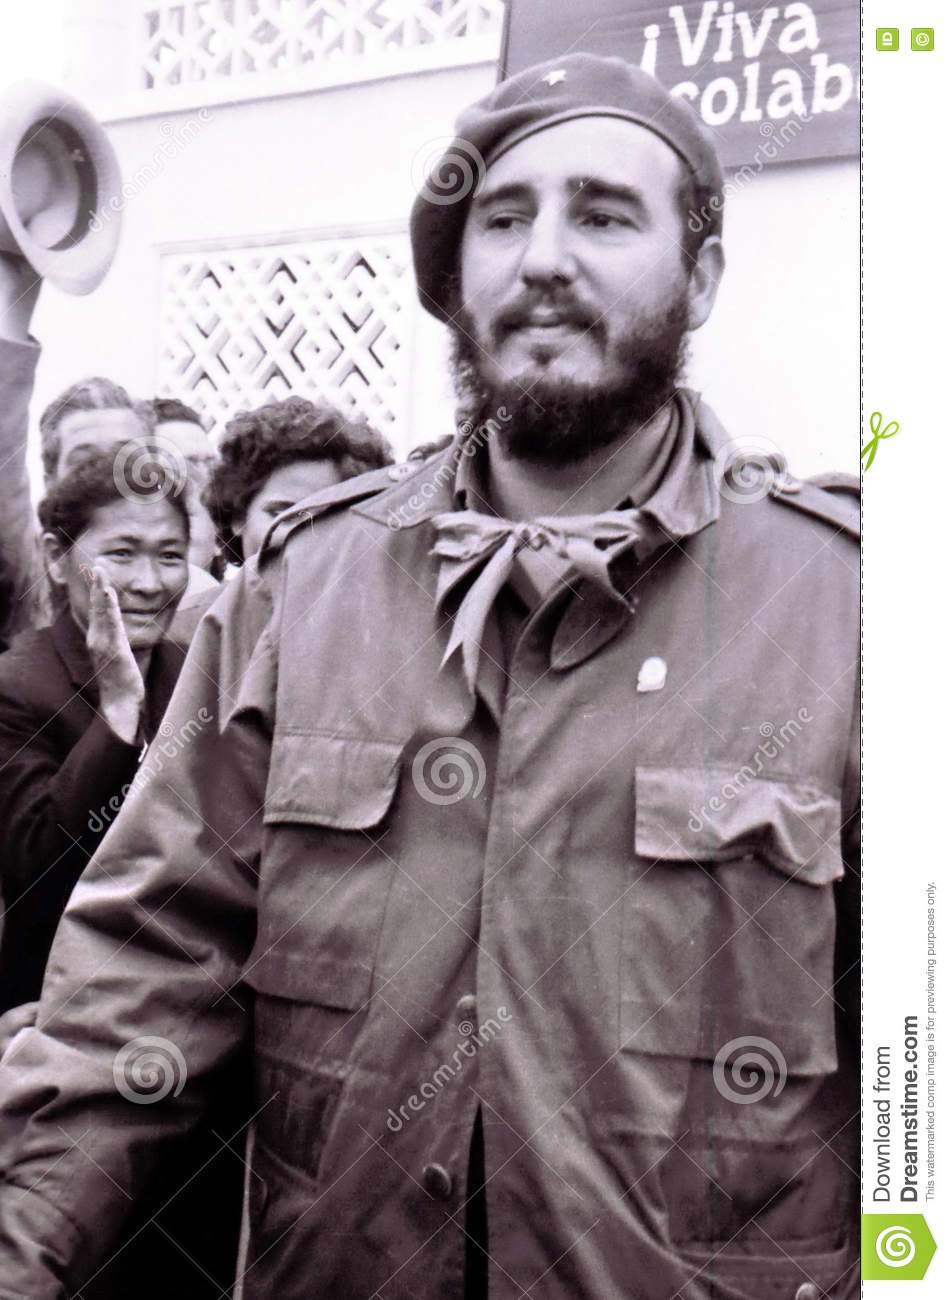 Yangiyer Fidel Castro May 1963